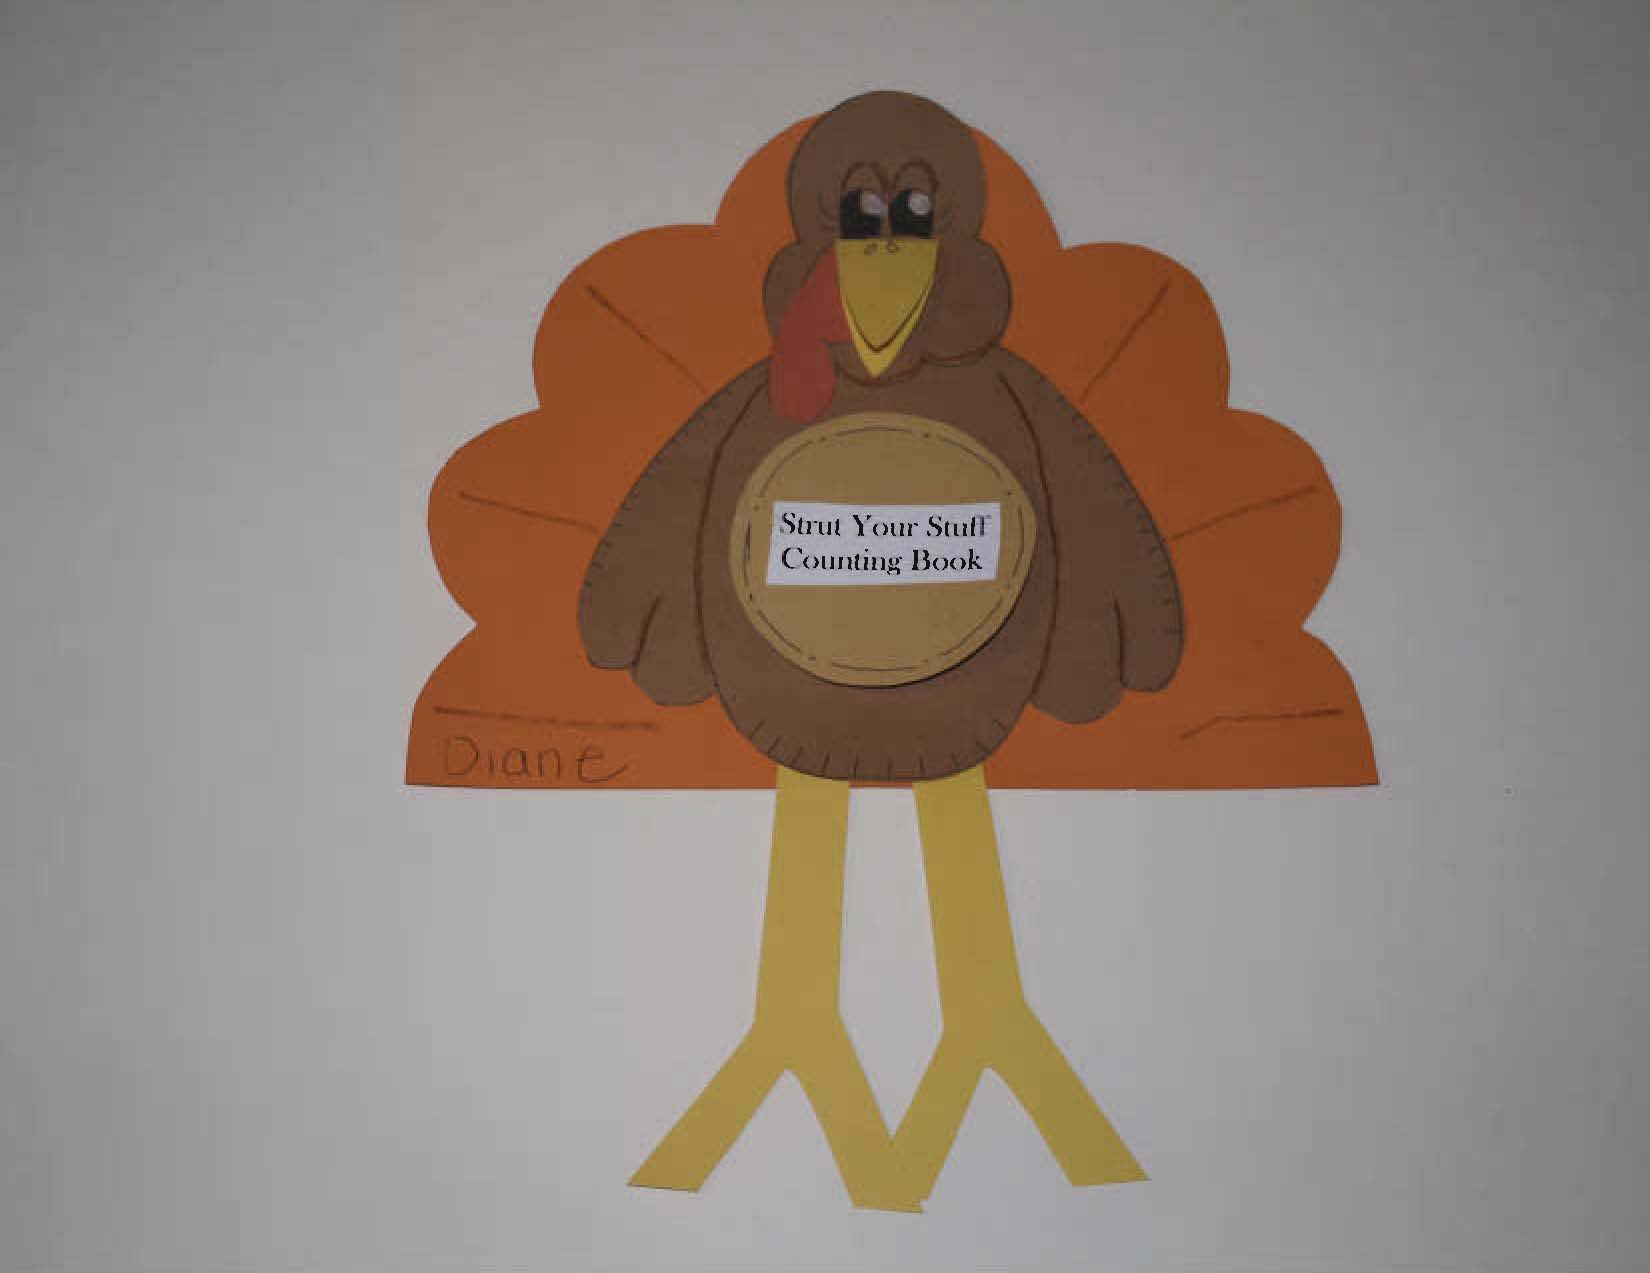 FREE common core lessons, turkey art and activities, turkey bulletin board ideas, Thanksgiving lessons, Thanksgiving activities, Thanksgiving bulletin boards, Thanksgiving bulletin board ideas, Turkey bulletin boards, turkey activities, turkey lessons, turkey arts and crafts, turkey art projects, common core lessons for kindergarten, turkey paper chain, counting down to Thanksgiving, paper bag turkey,